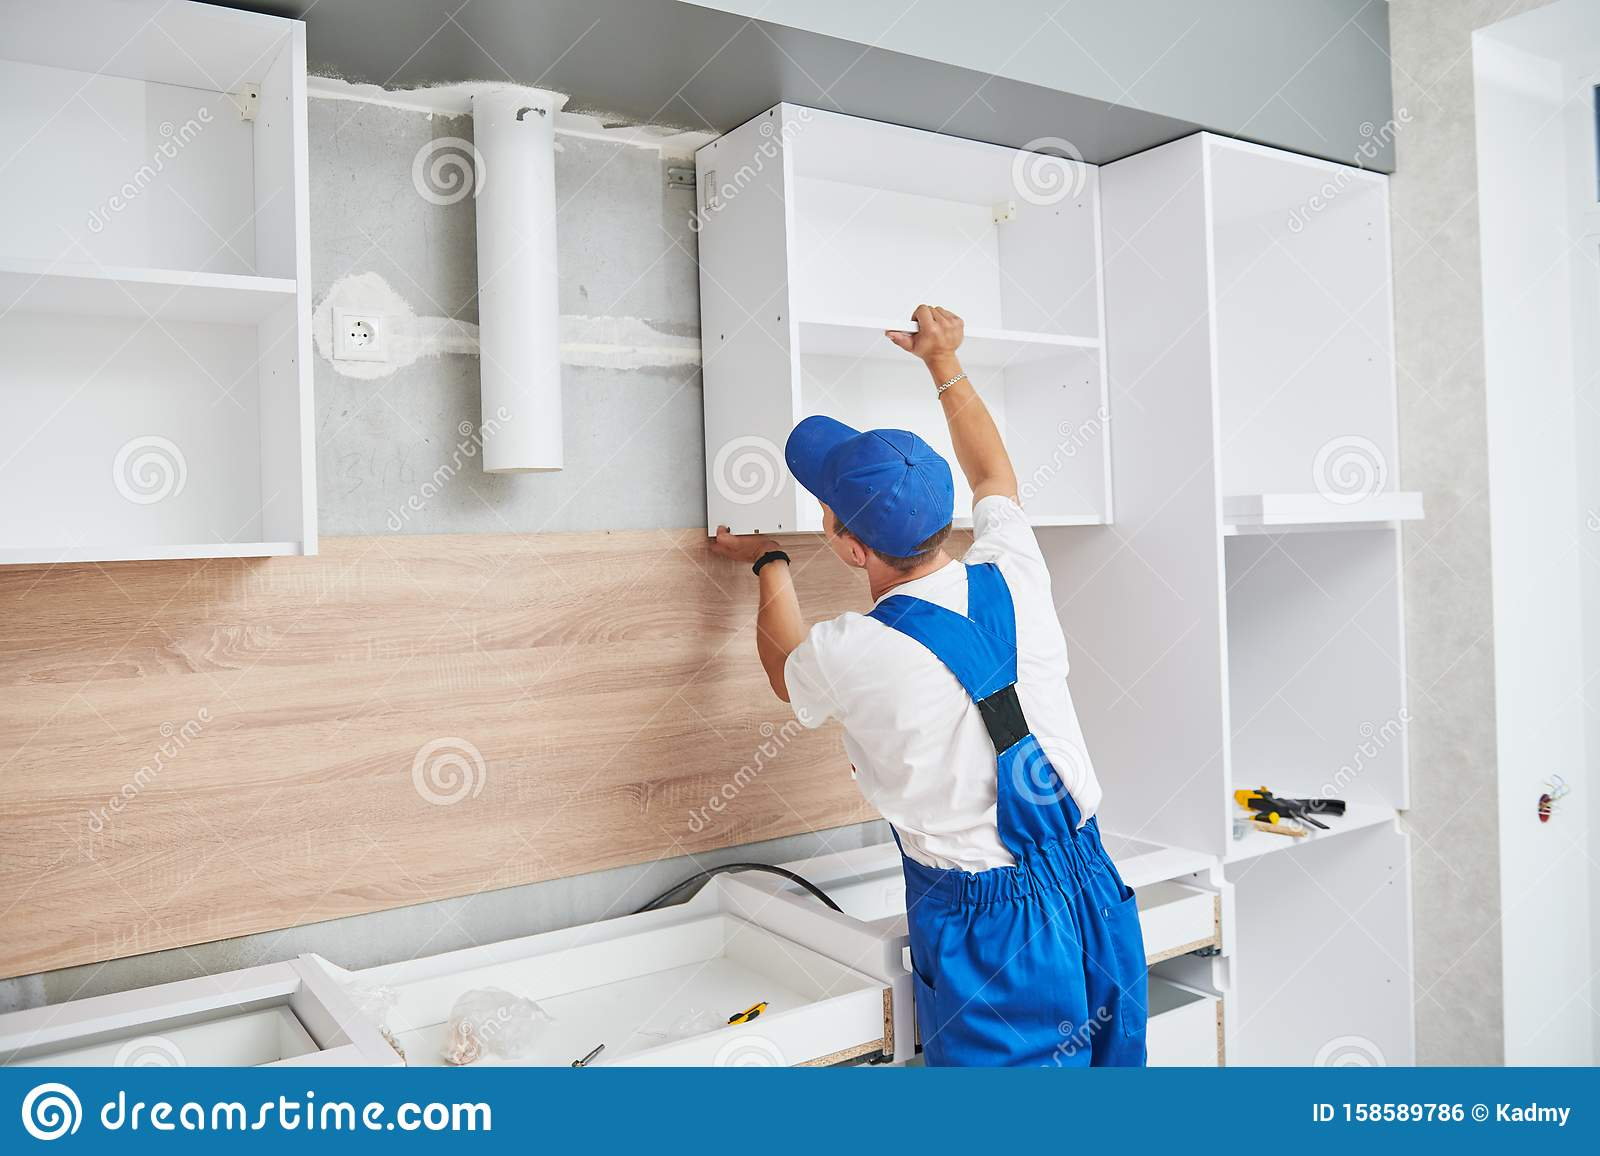 37 305 Kitchen Worker Photos Free Royalty Free Stock Photos From Dreamstime